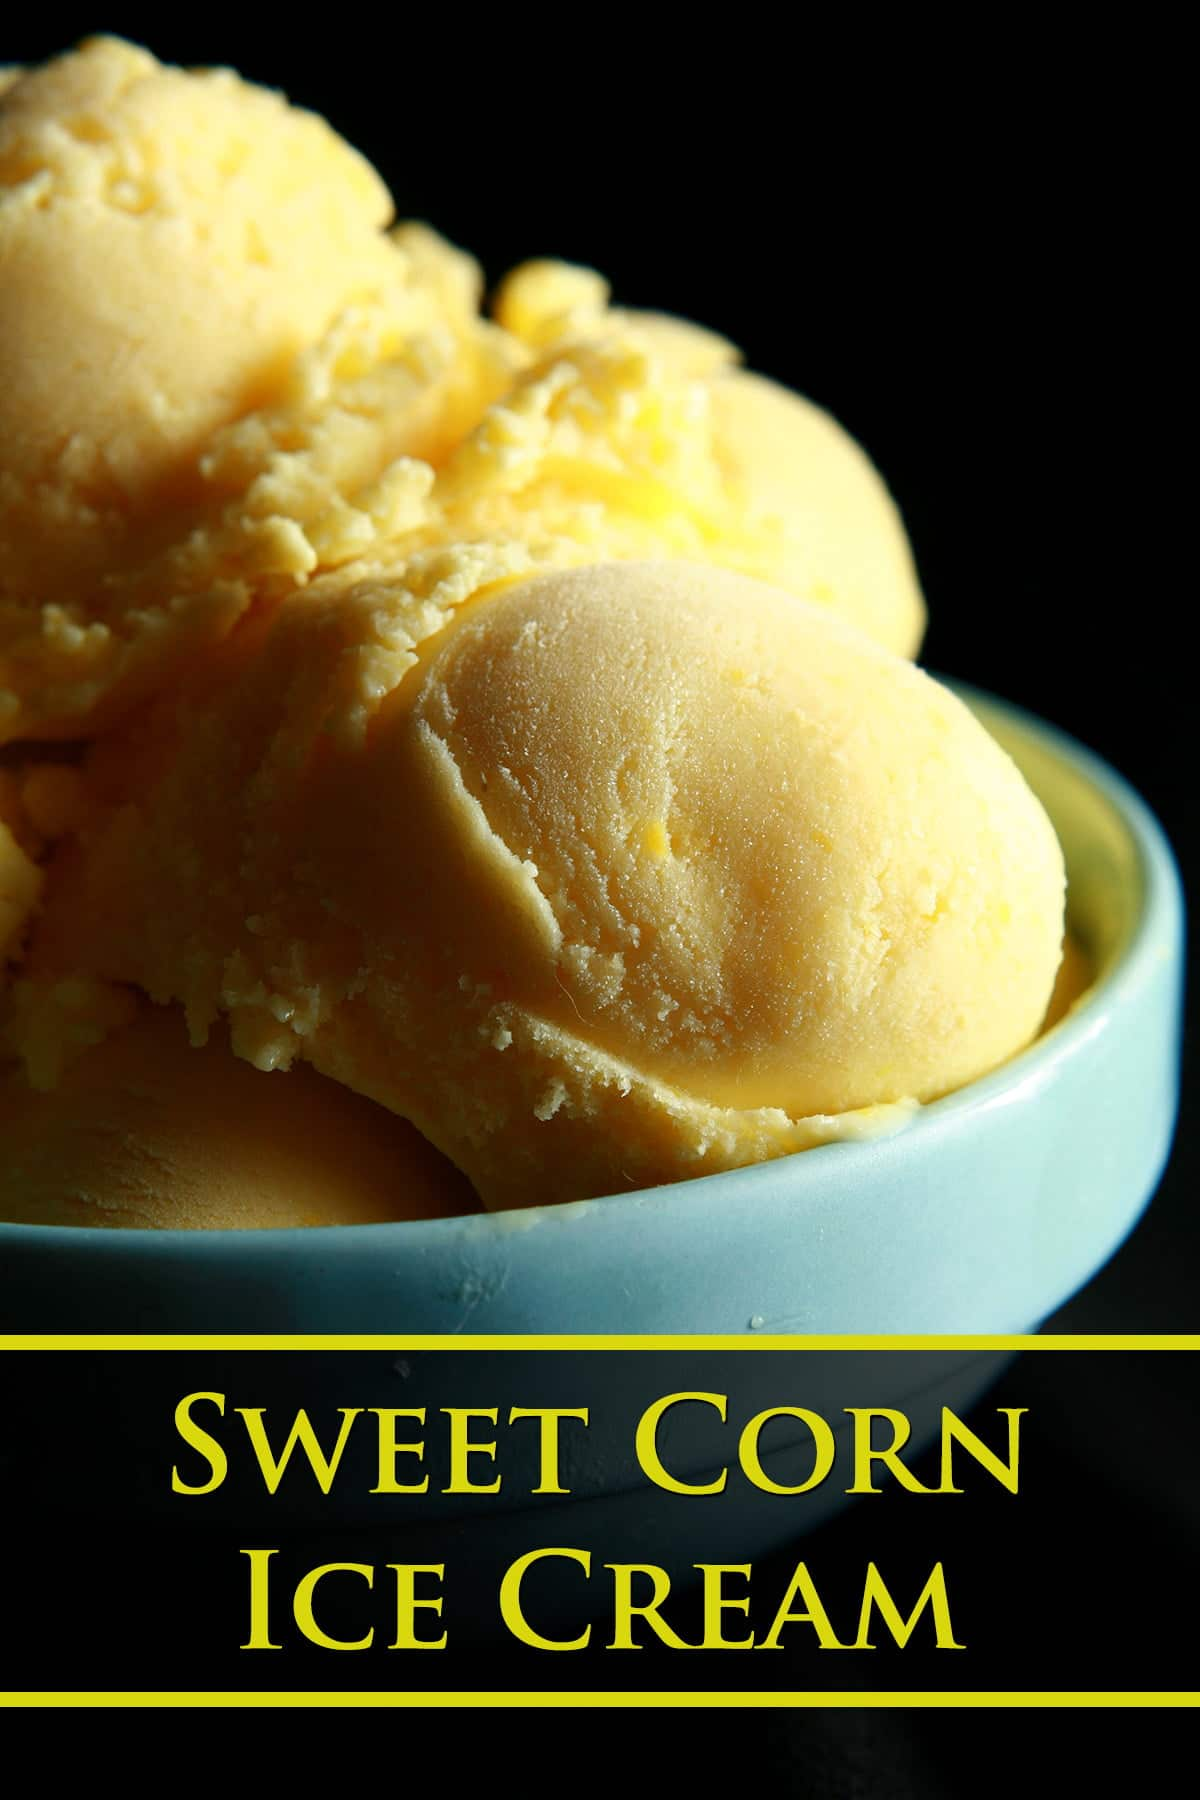 A small blue bowl, piled high with scoops of a yellow coloured sweet corn ice cream.